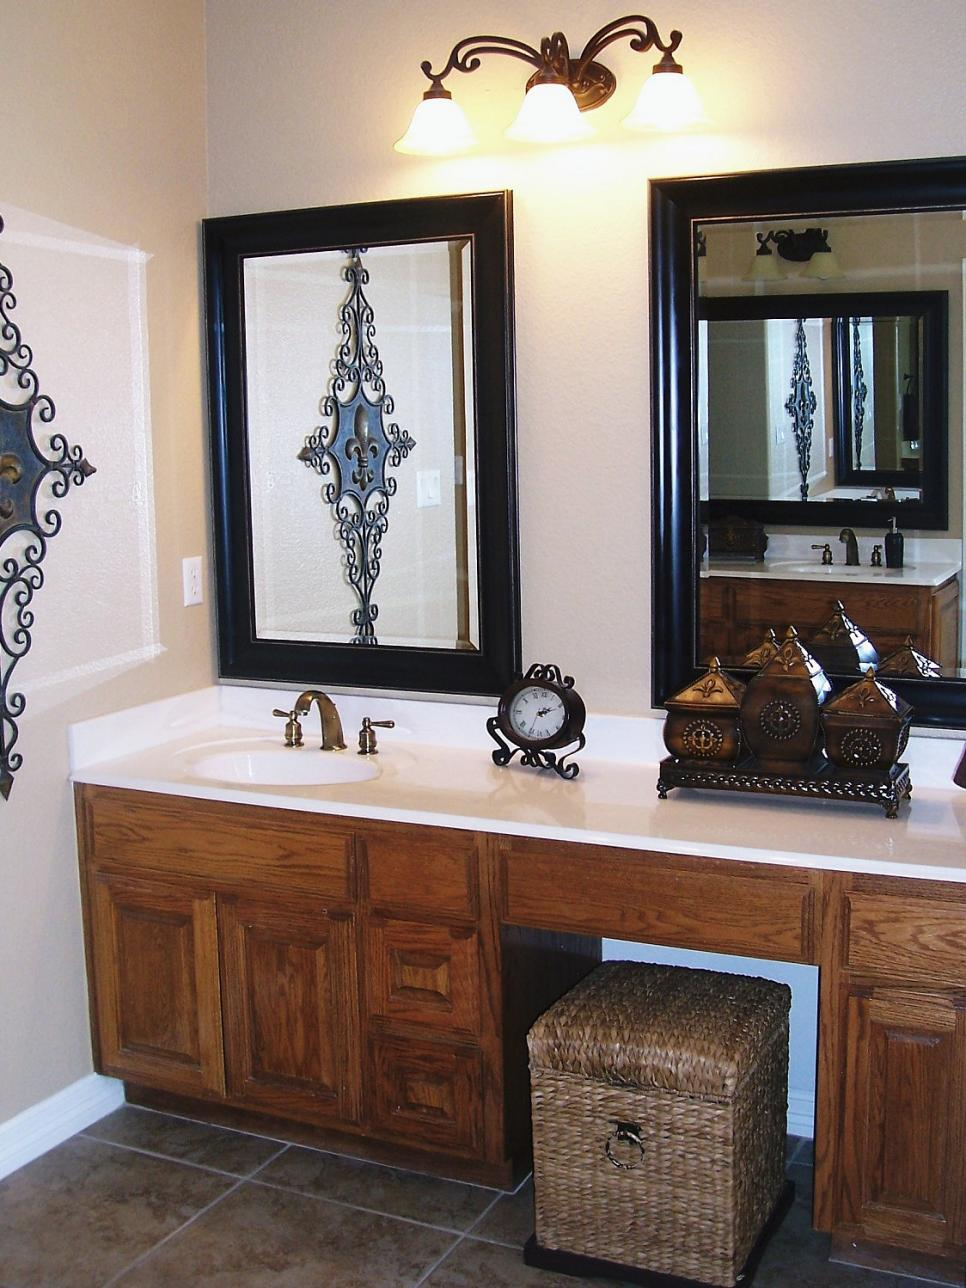 10 Beautiful Bathroom Mirrors